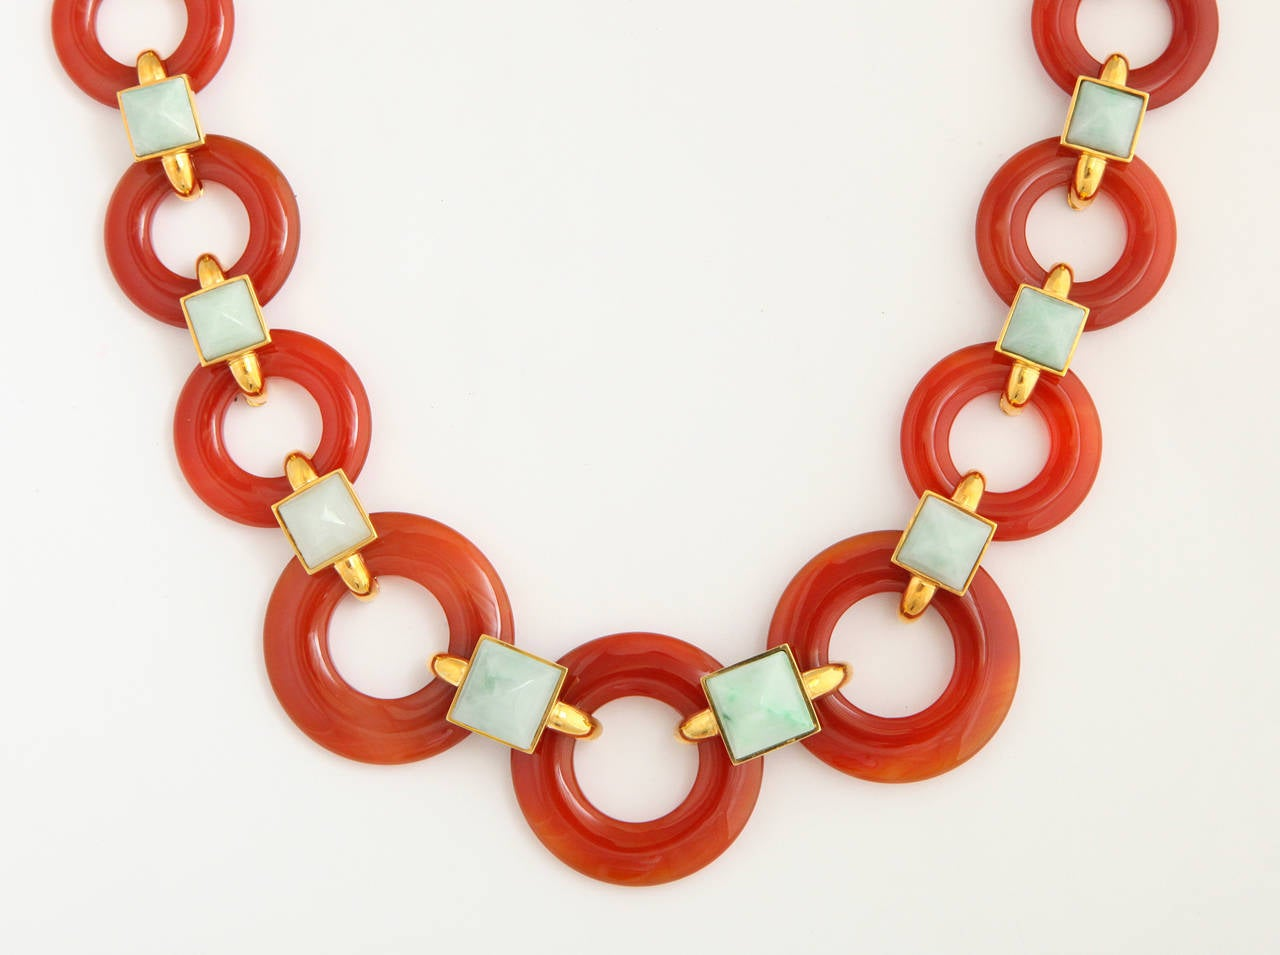 1970s Aldo Cipullo Carved Carnelian Jade Gold Link Necklace 3